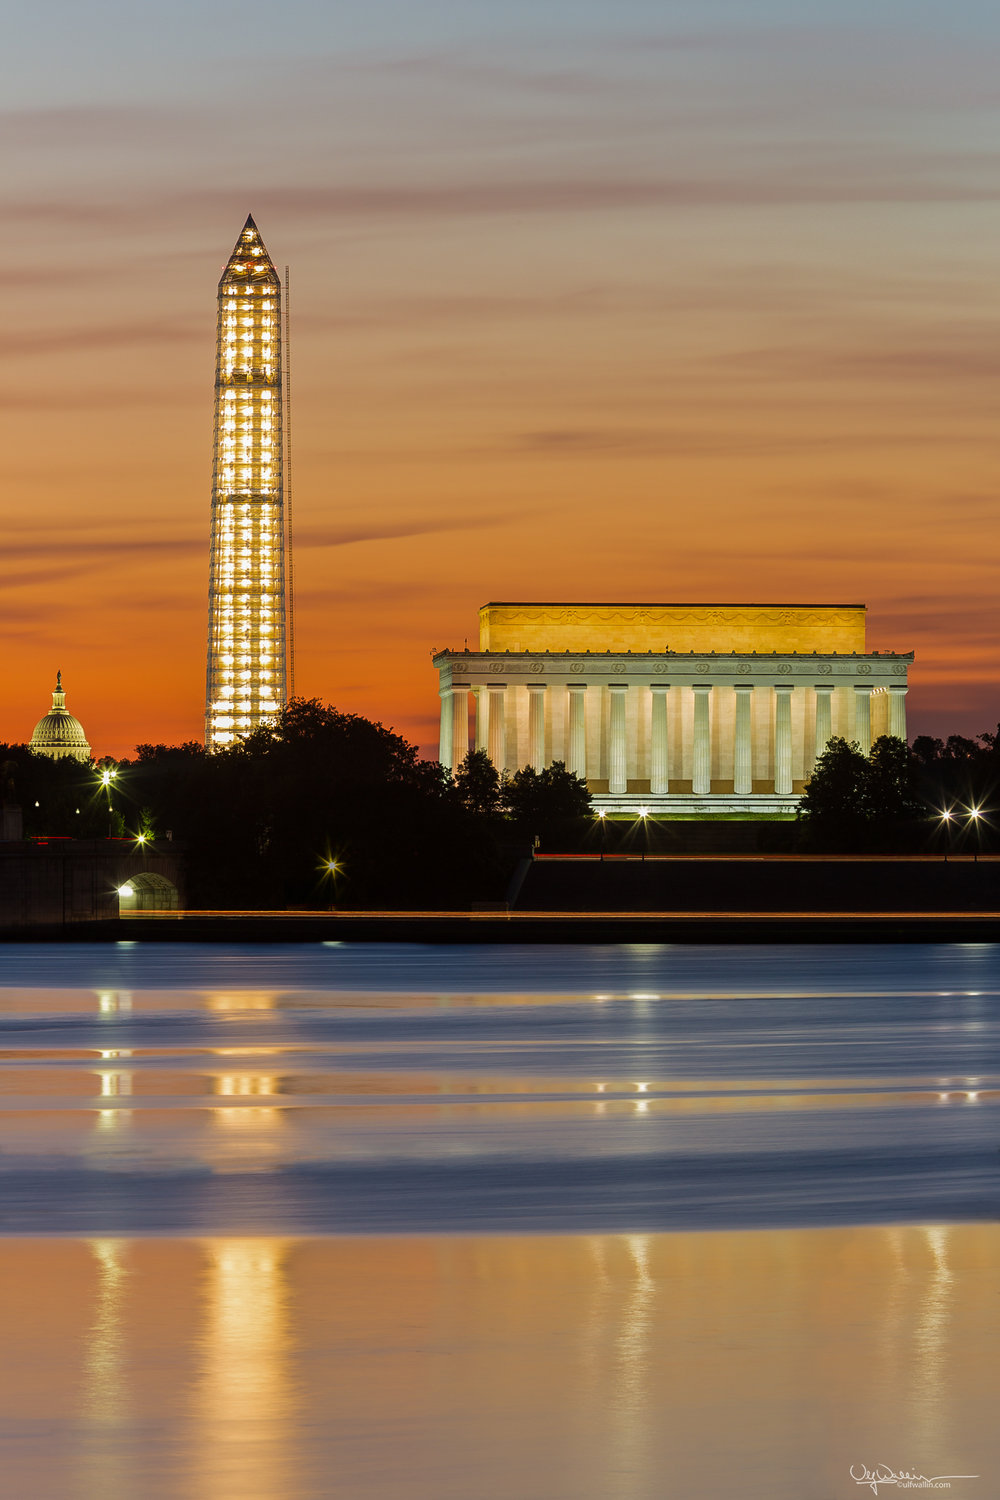 Three iconic DC landmarks at dawn, Lincoln Memorial, Washington Monument and Capitol Dome. Part of series showing Washington Monument while being repaired from earthquake damage.